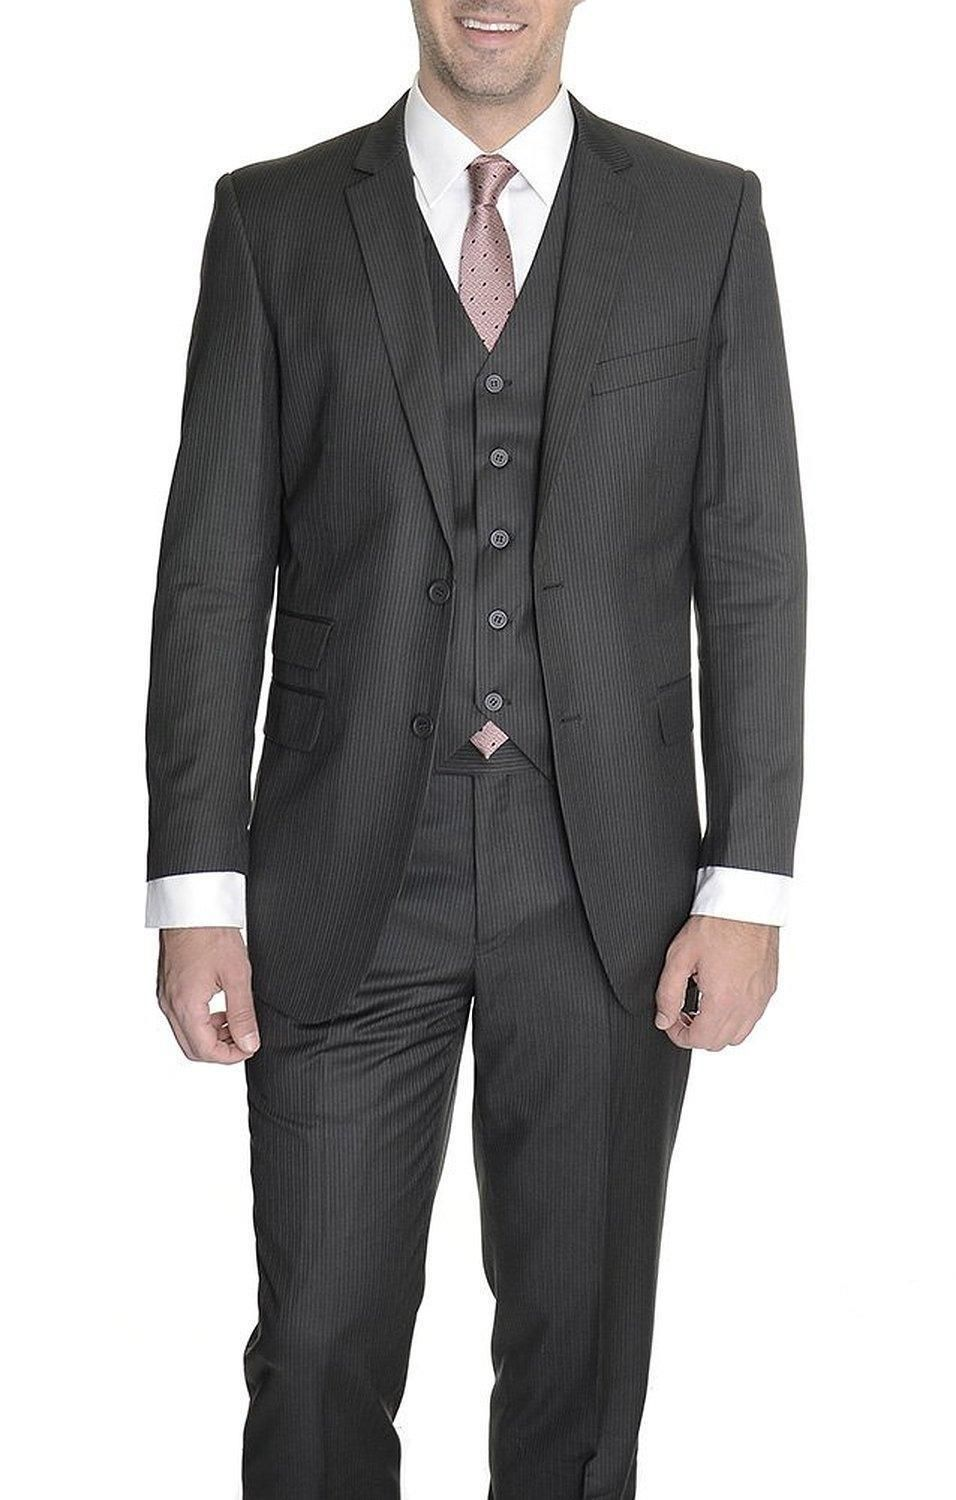 Find More Suits Information about Sport Suits For Men Prom Suits ...